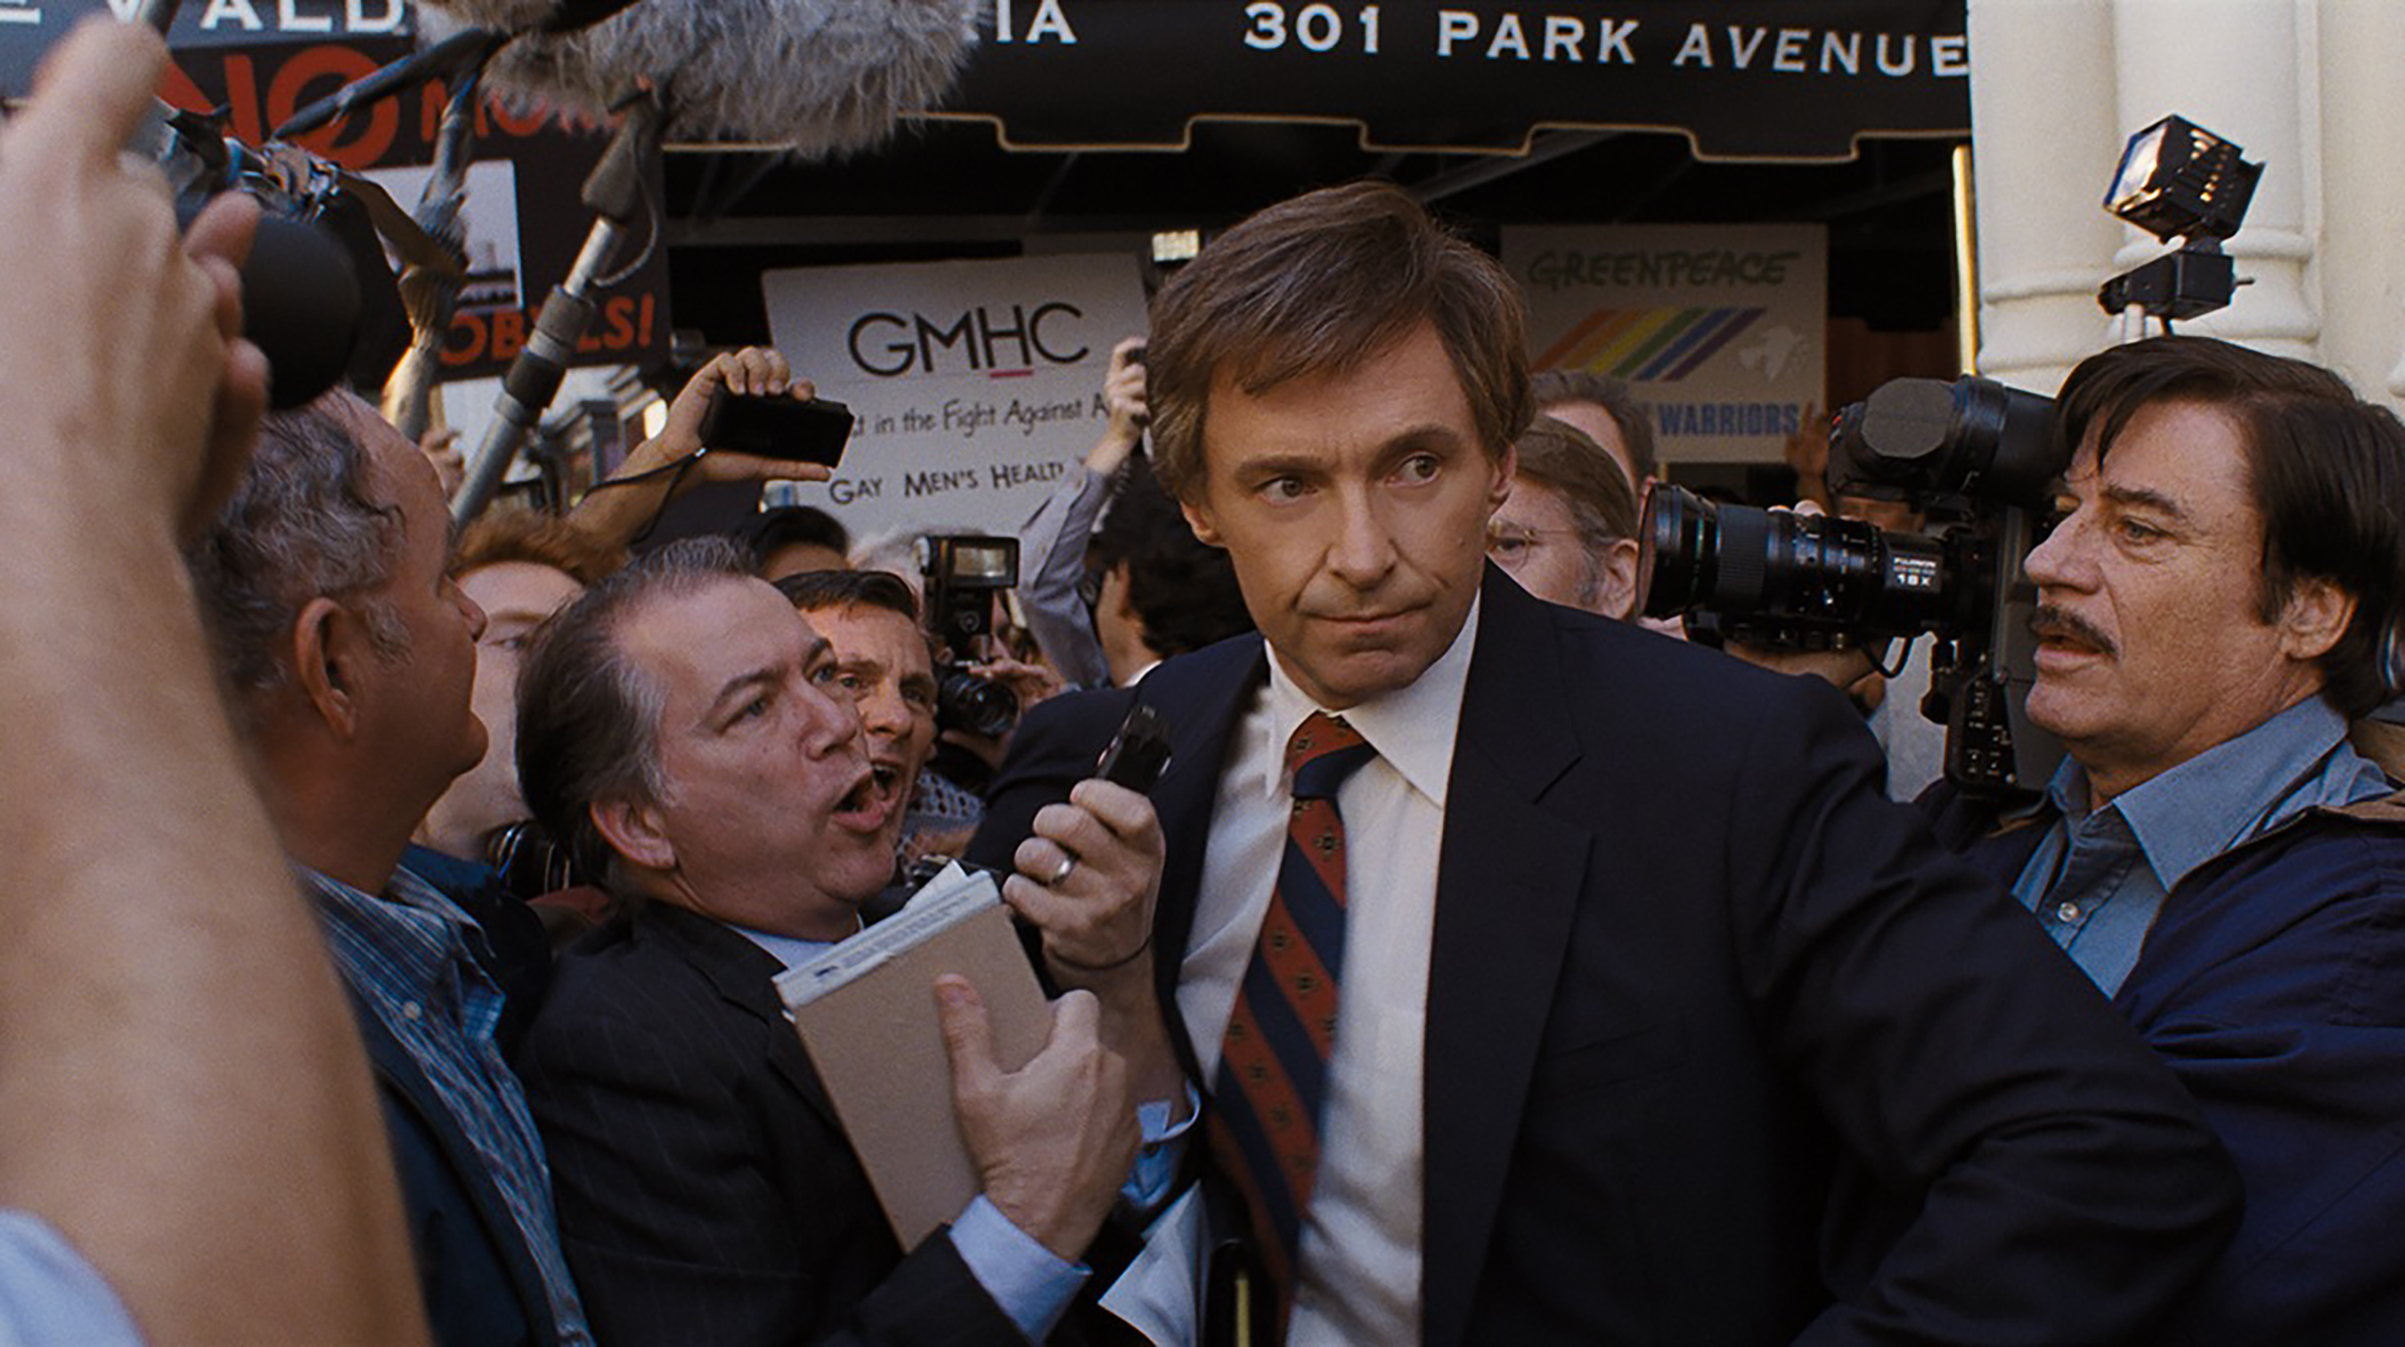 The Front Runner (Sony)